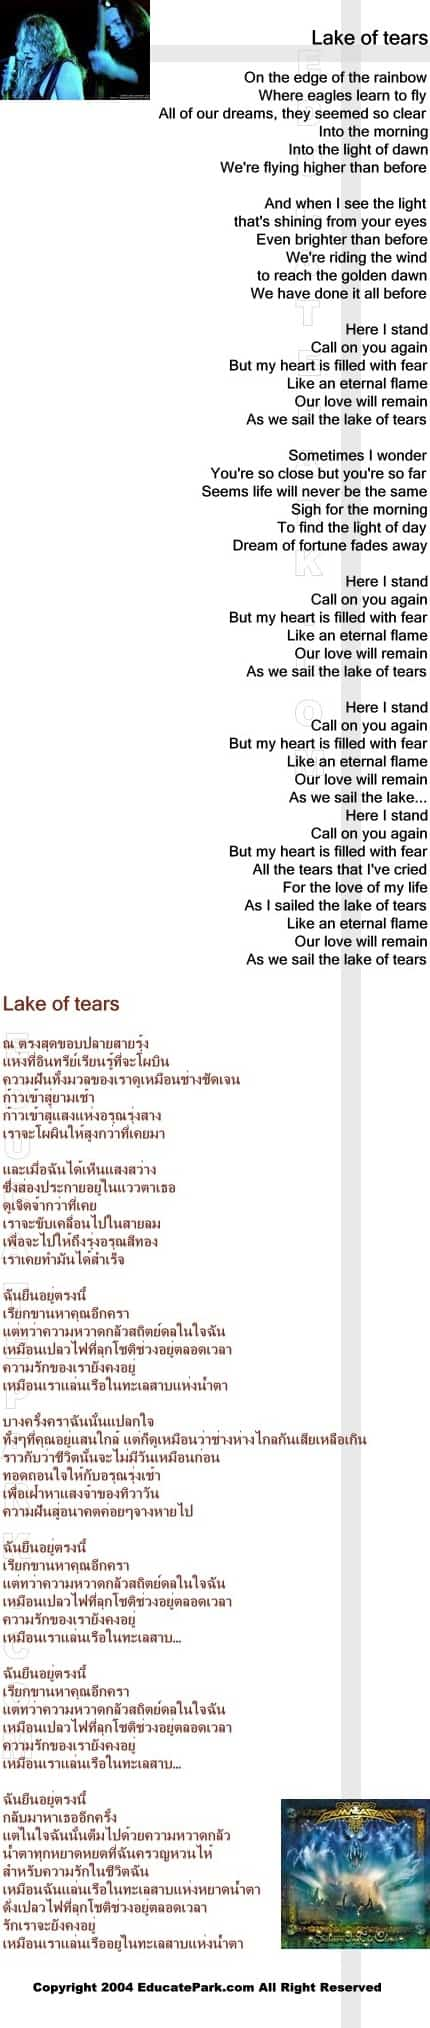 แปลเพลง Lake of tears - Gamma Ray